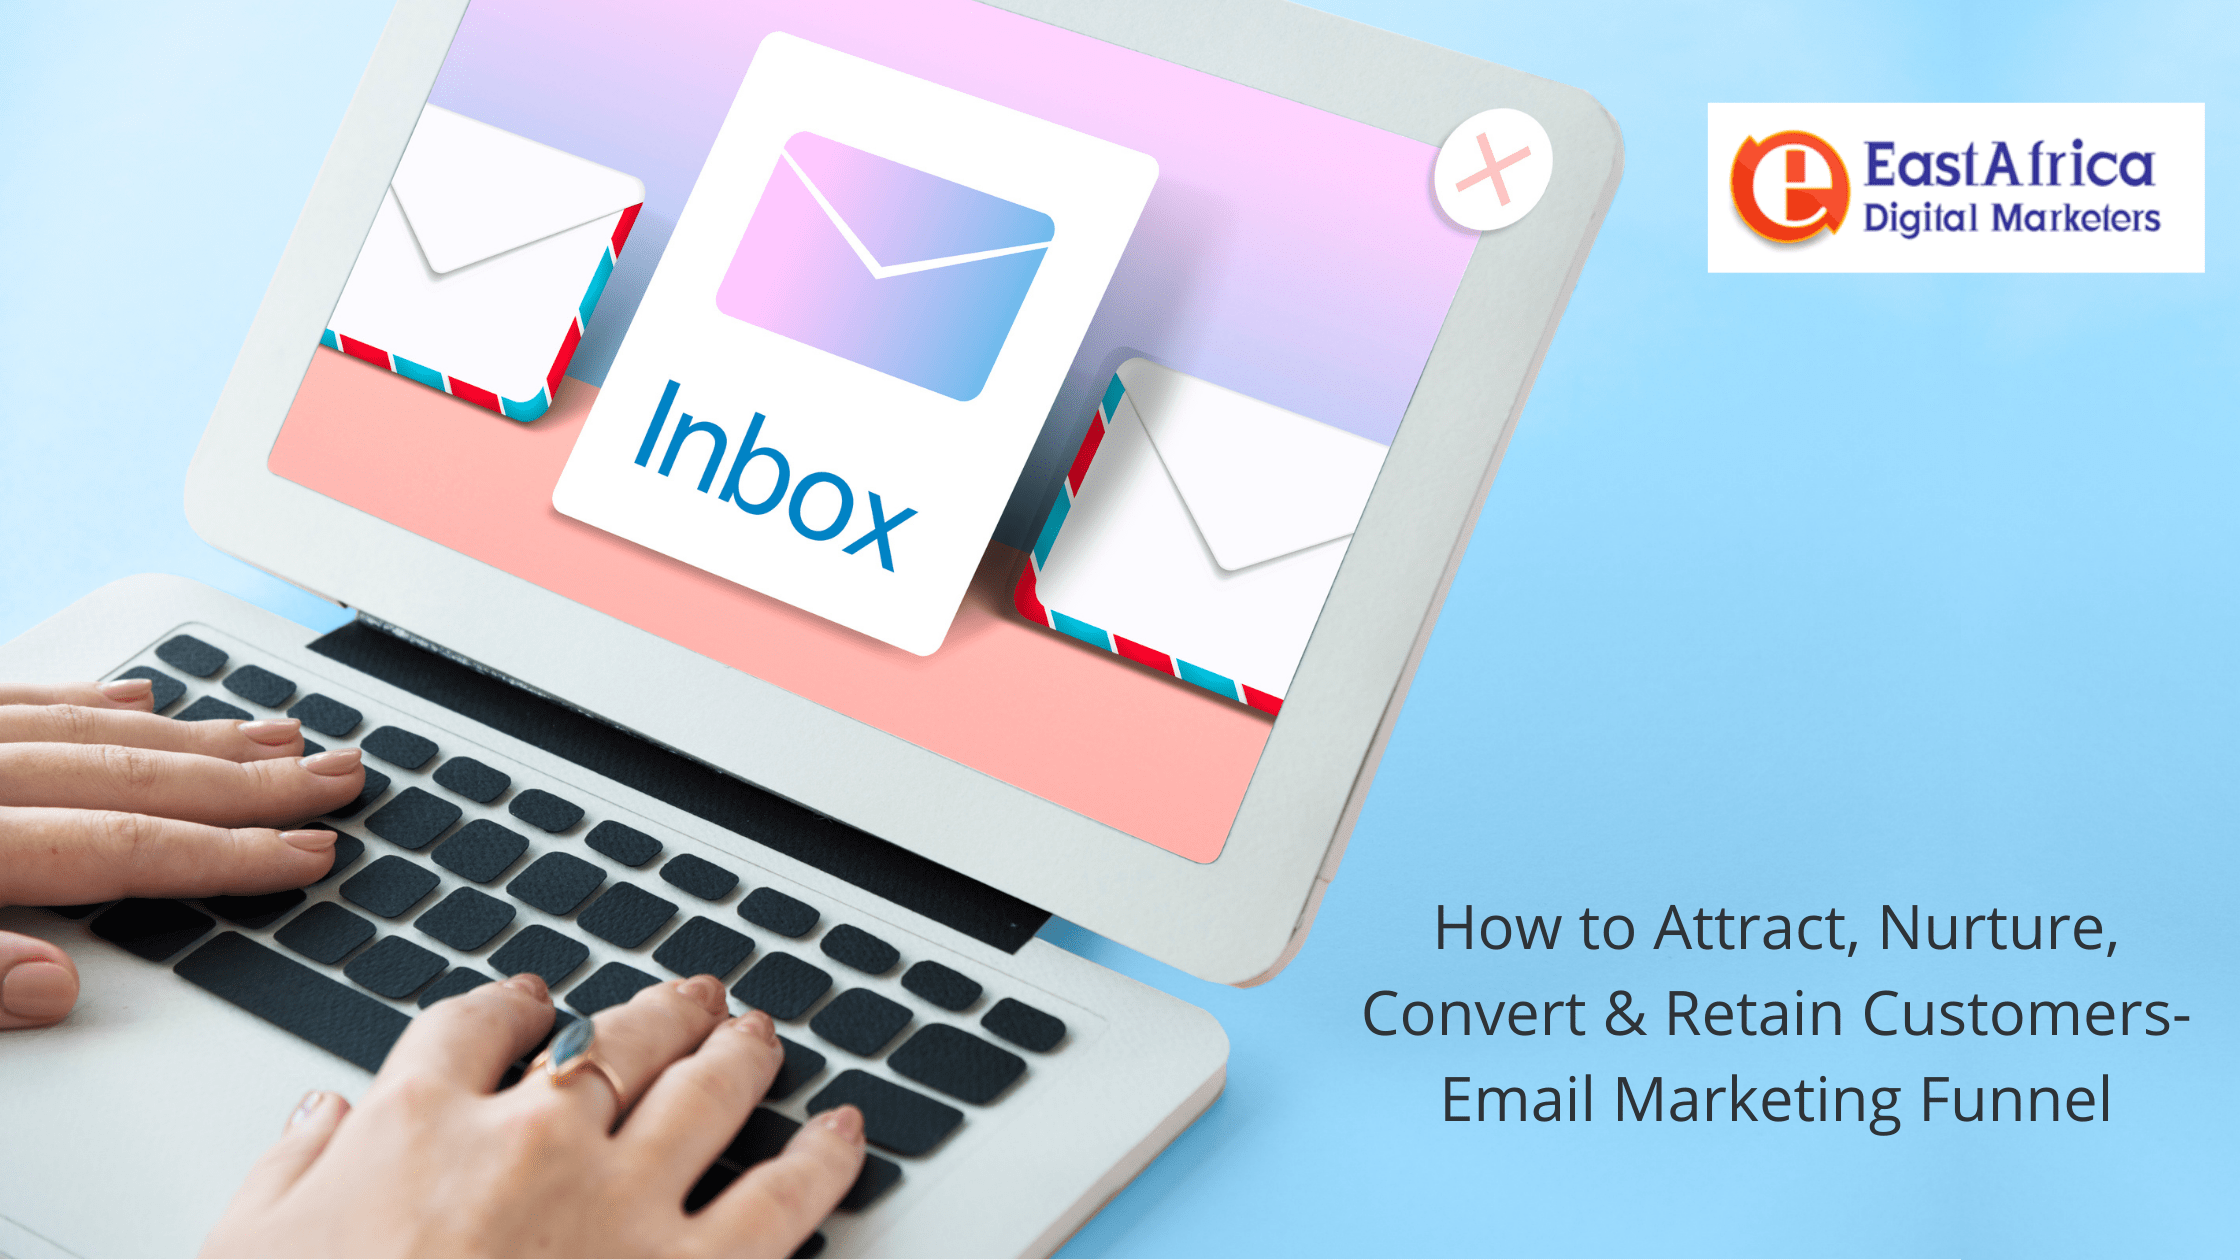 How to Attract, Nurture, Convert & Retain Customers- Email Marketing Funnel